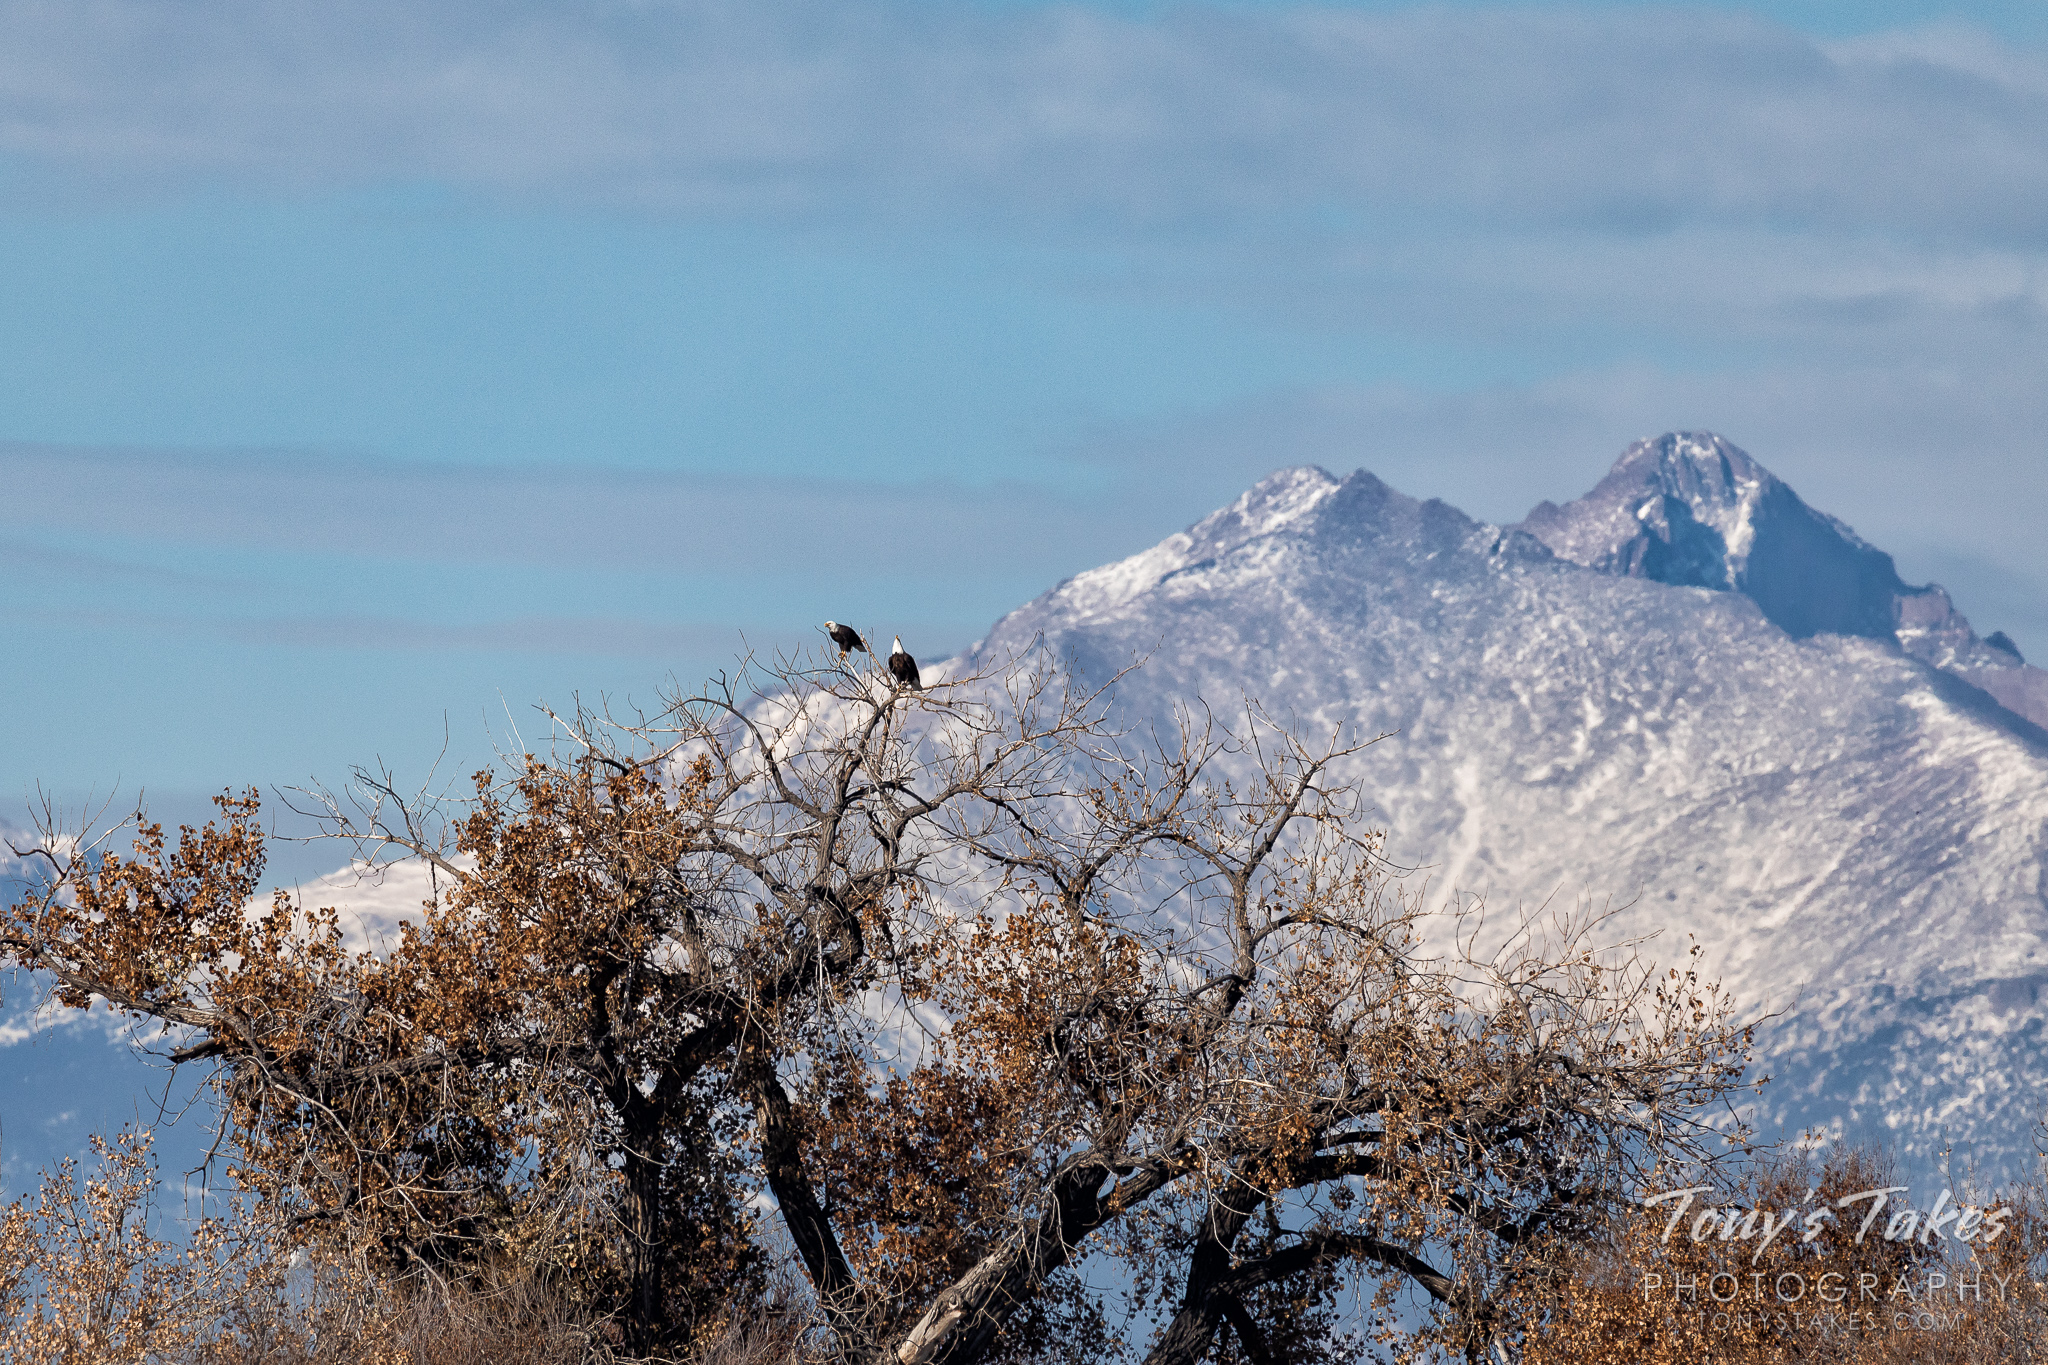 A pair of bald eagles hang out in a tree with Mount Meeker and Longs Peak in the background. (© Tony's Takes)